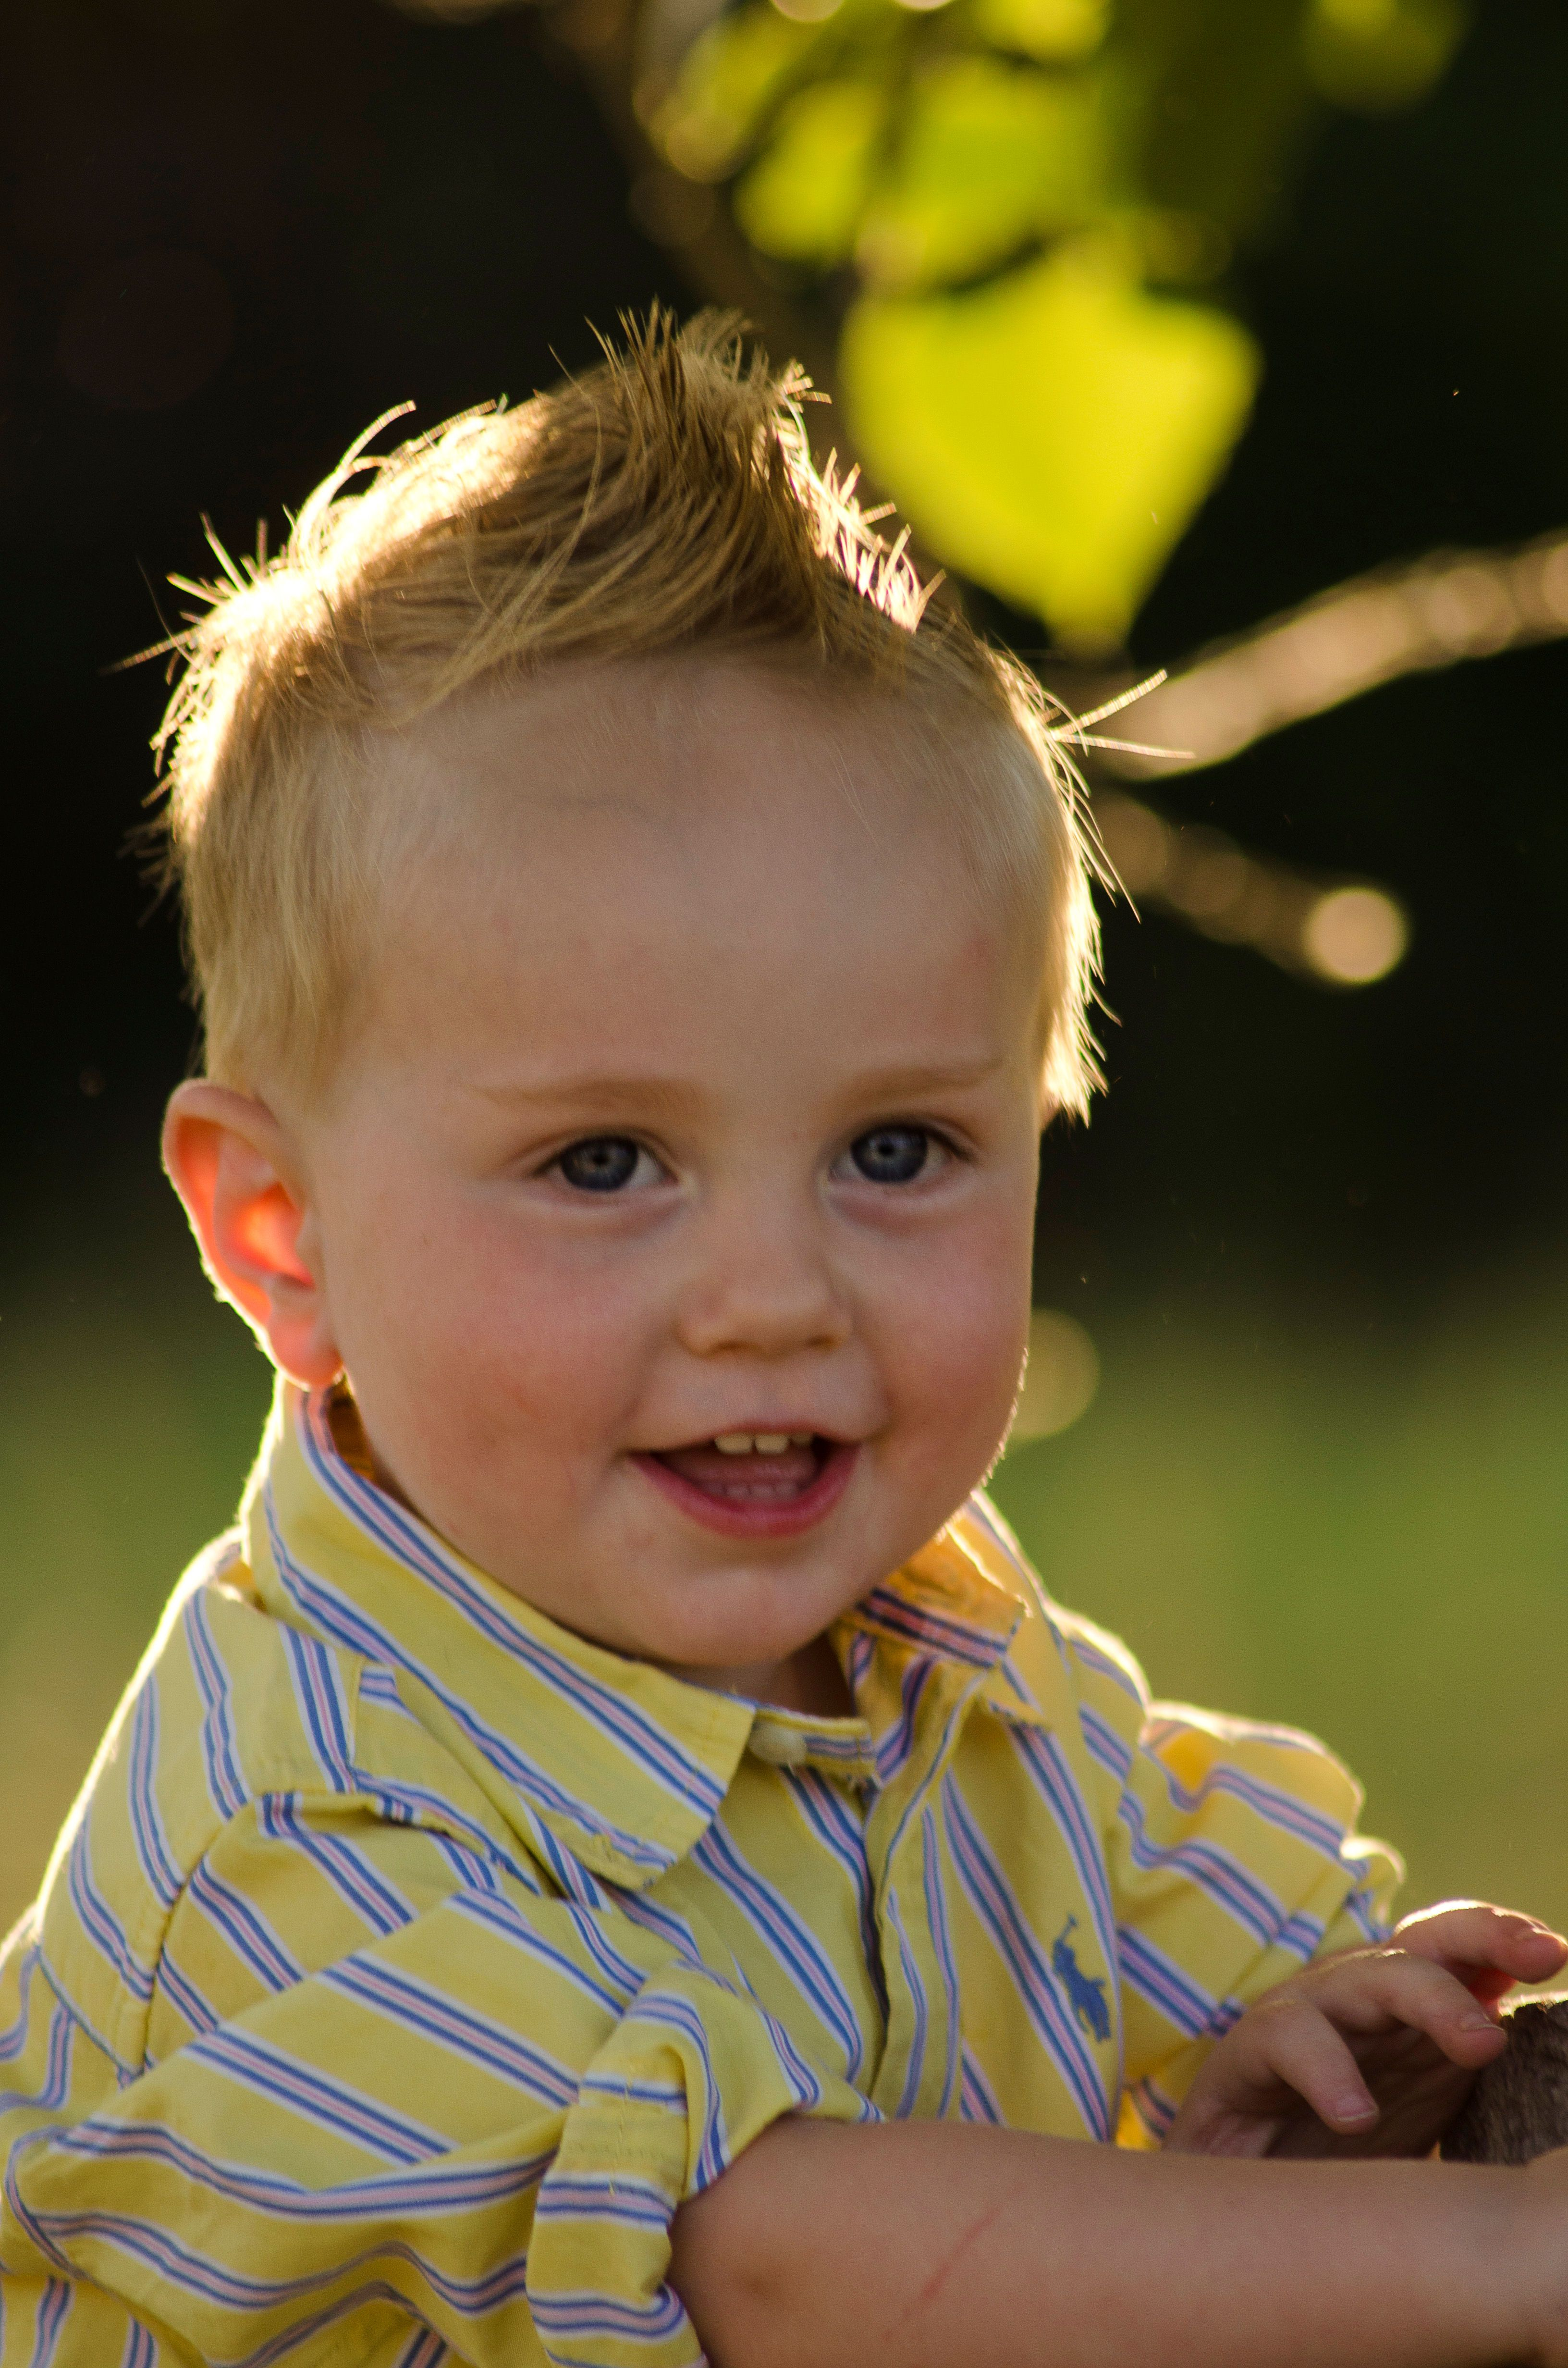 Little Man S 18 Month Photo Shoot By Moon Pix Tags Toddler Photo Love This Haircut Toddler Photos Baby Haircut Toddler